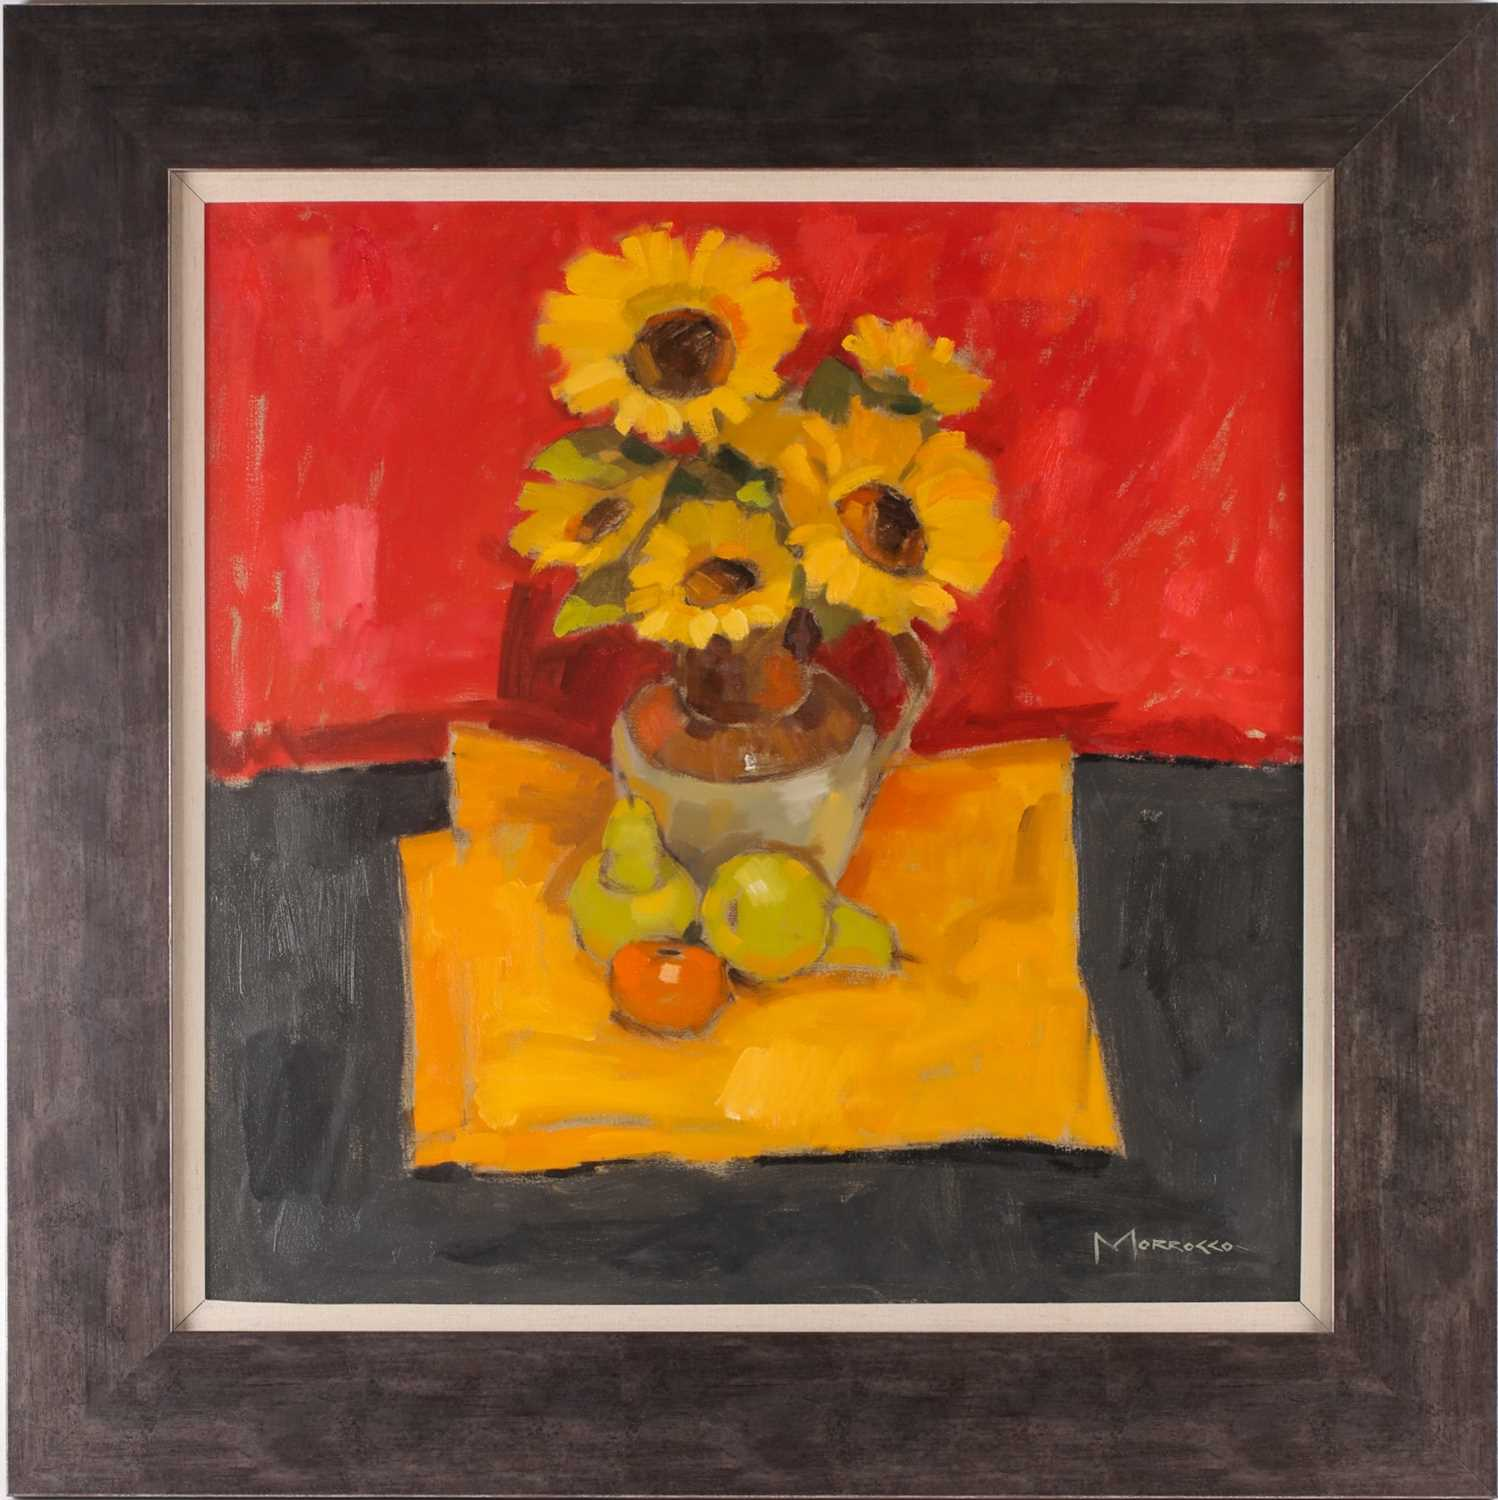 Jack Morrocco, FRSA, (Scottish. B. 1953), Sunflowers against red, oil on canvas, signed lower right,